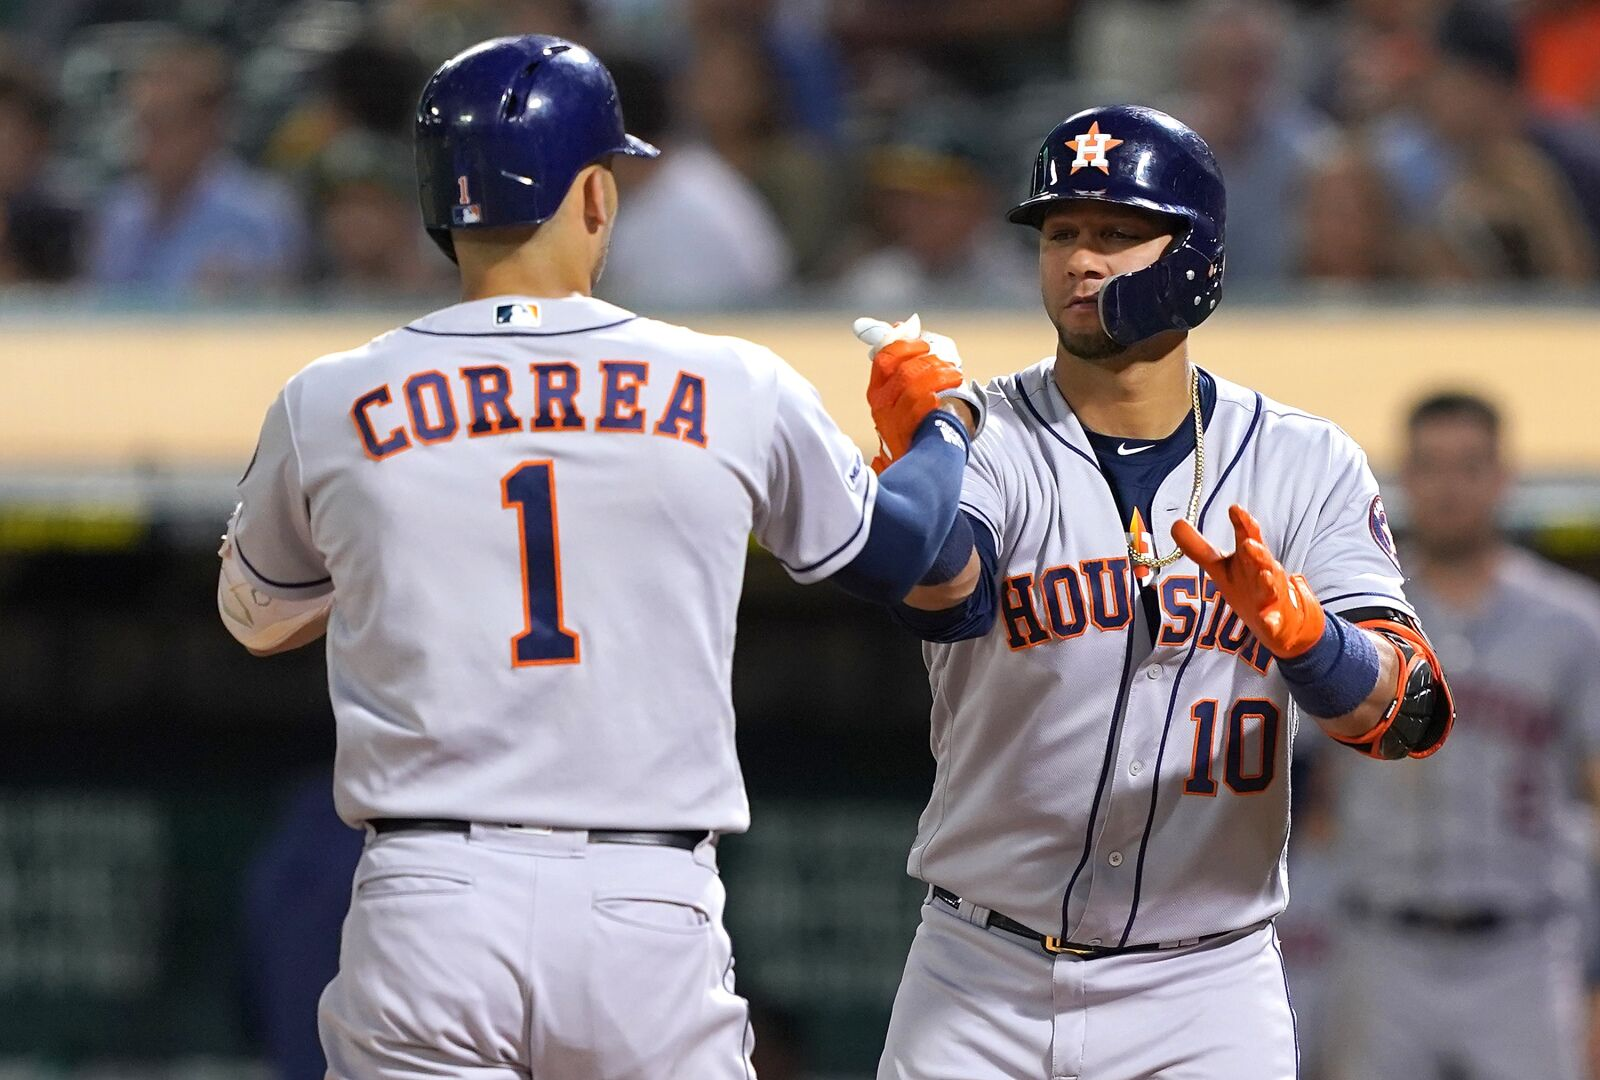 The Houston Astros lose a home run derby to the Oakland A's 7-6